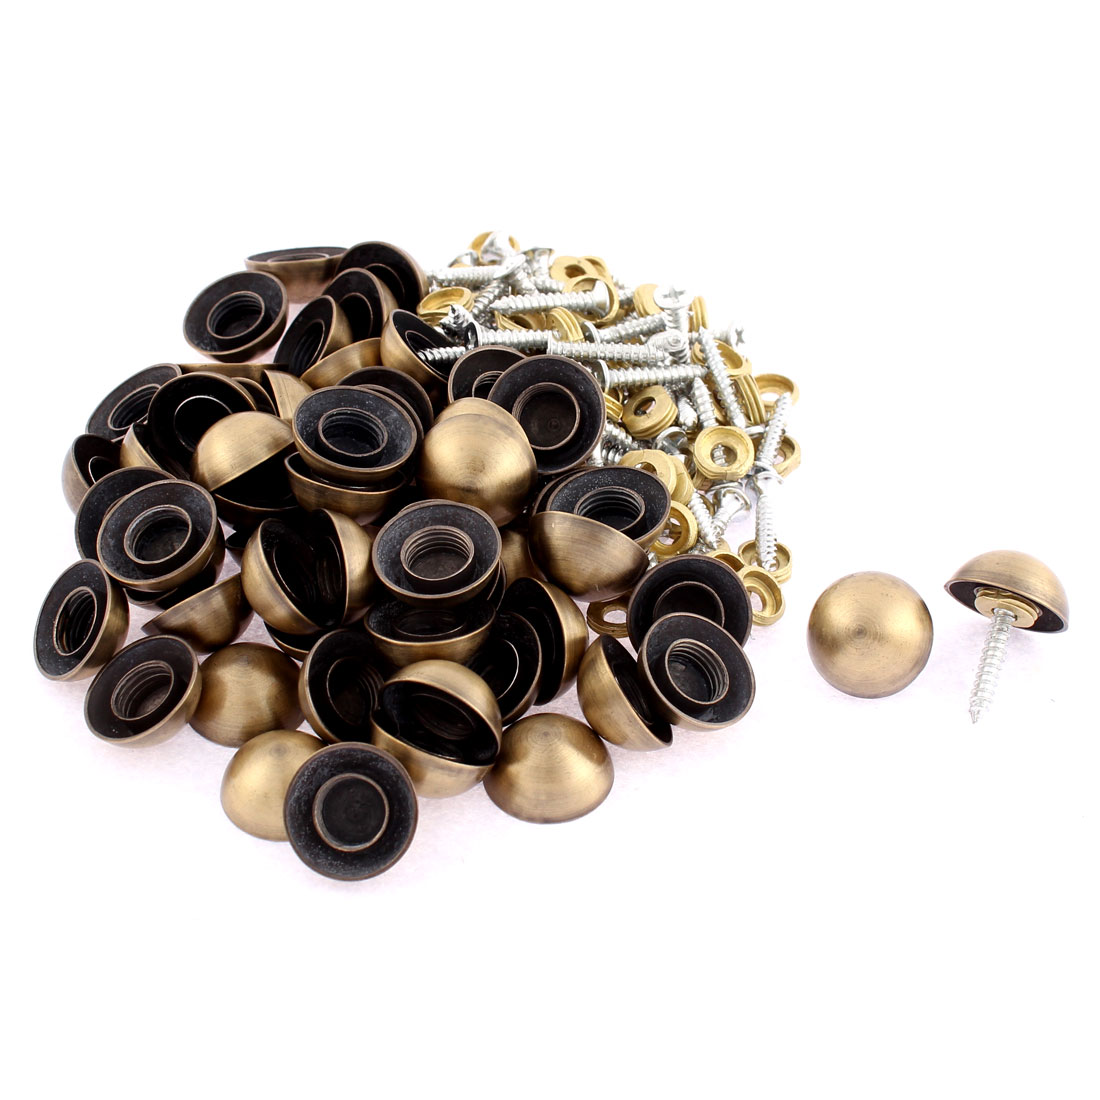 Semicircle Glass Mirror Caps Decorative Screws Nails Bronze Tone 18 x 8mm 60pcs